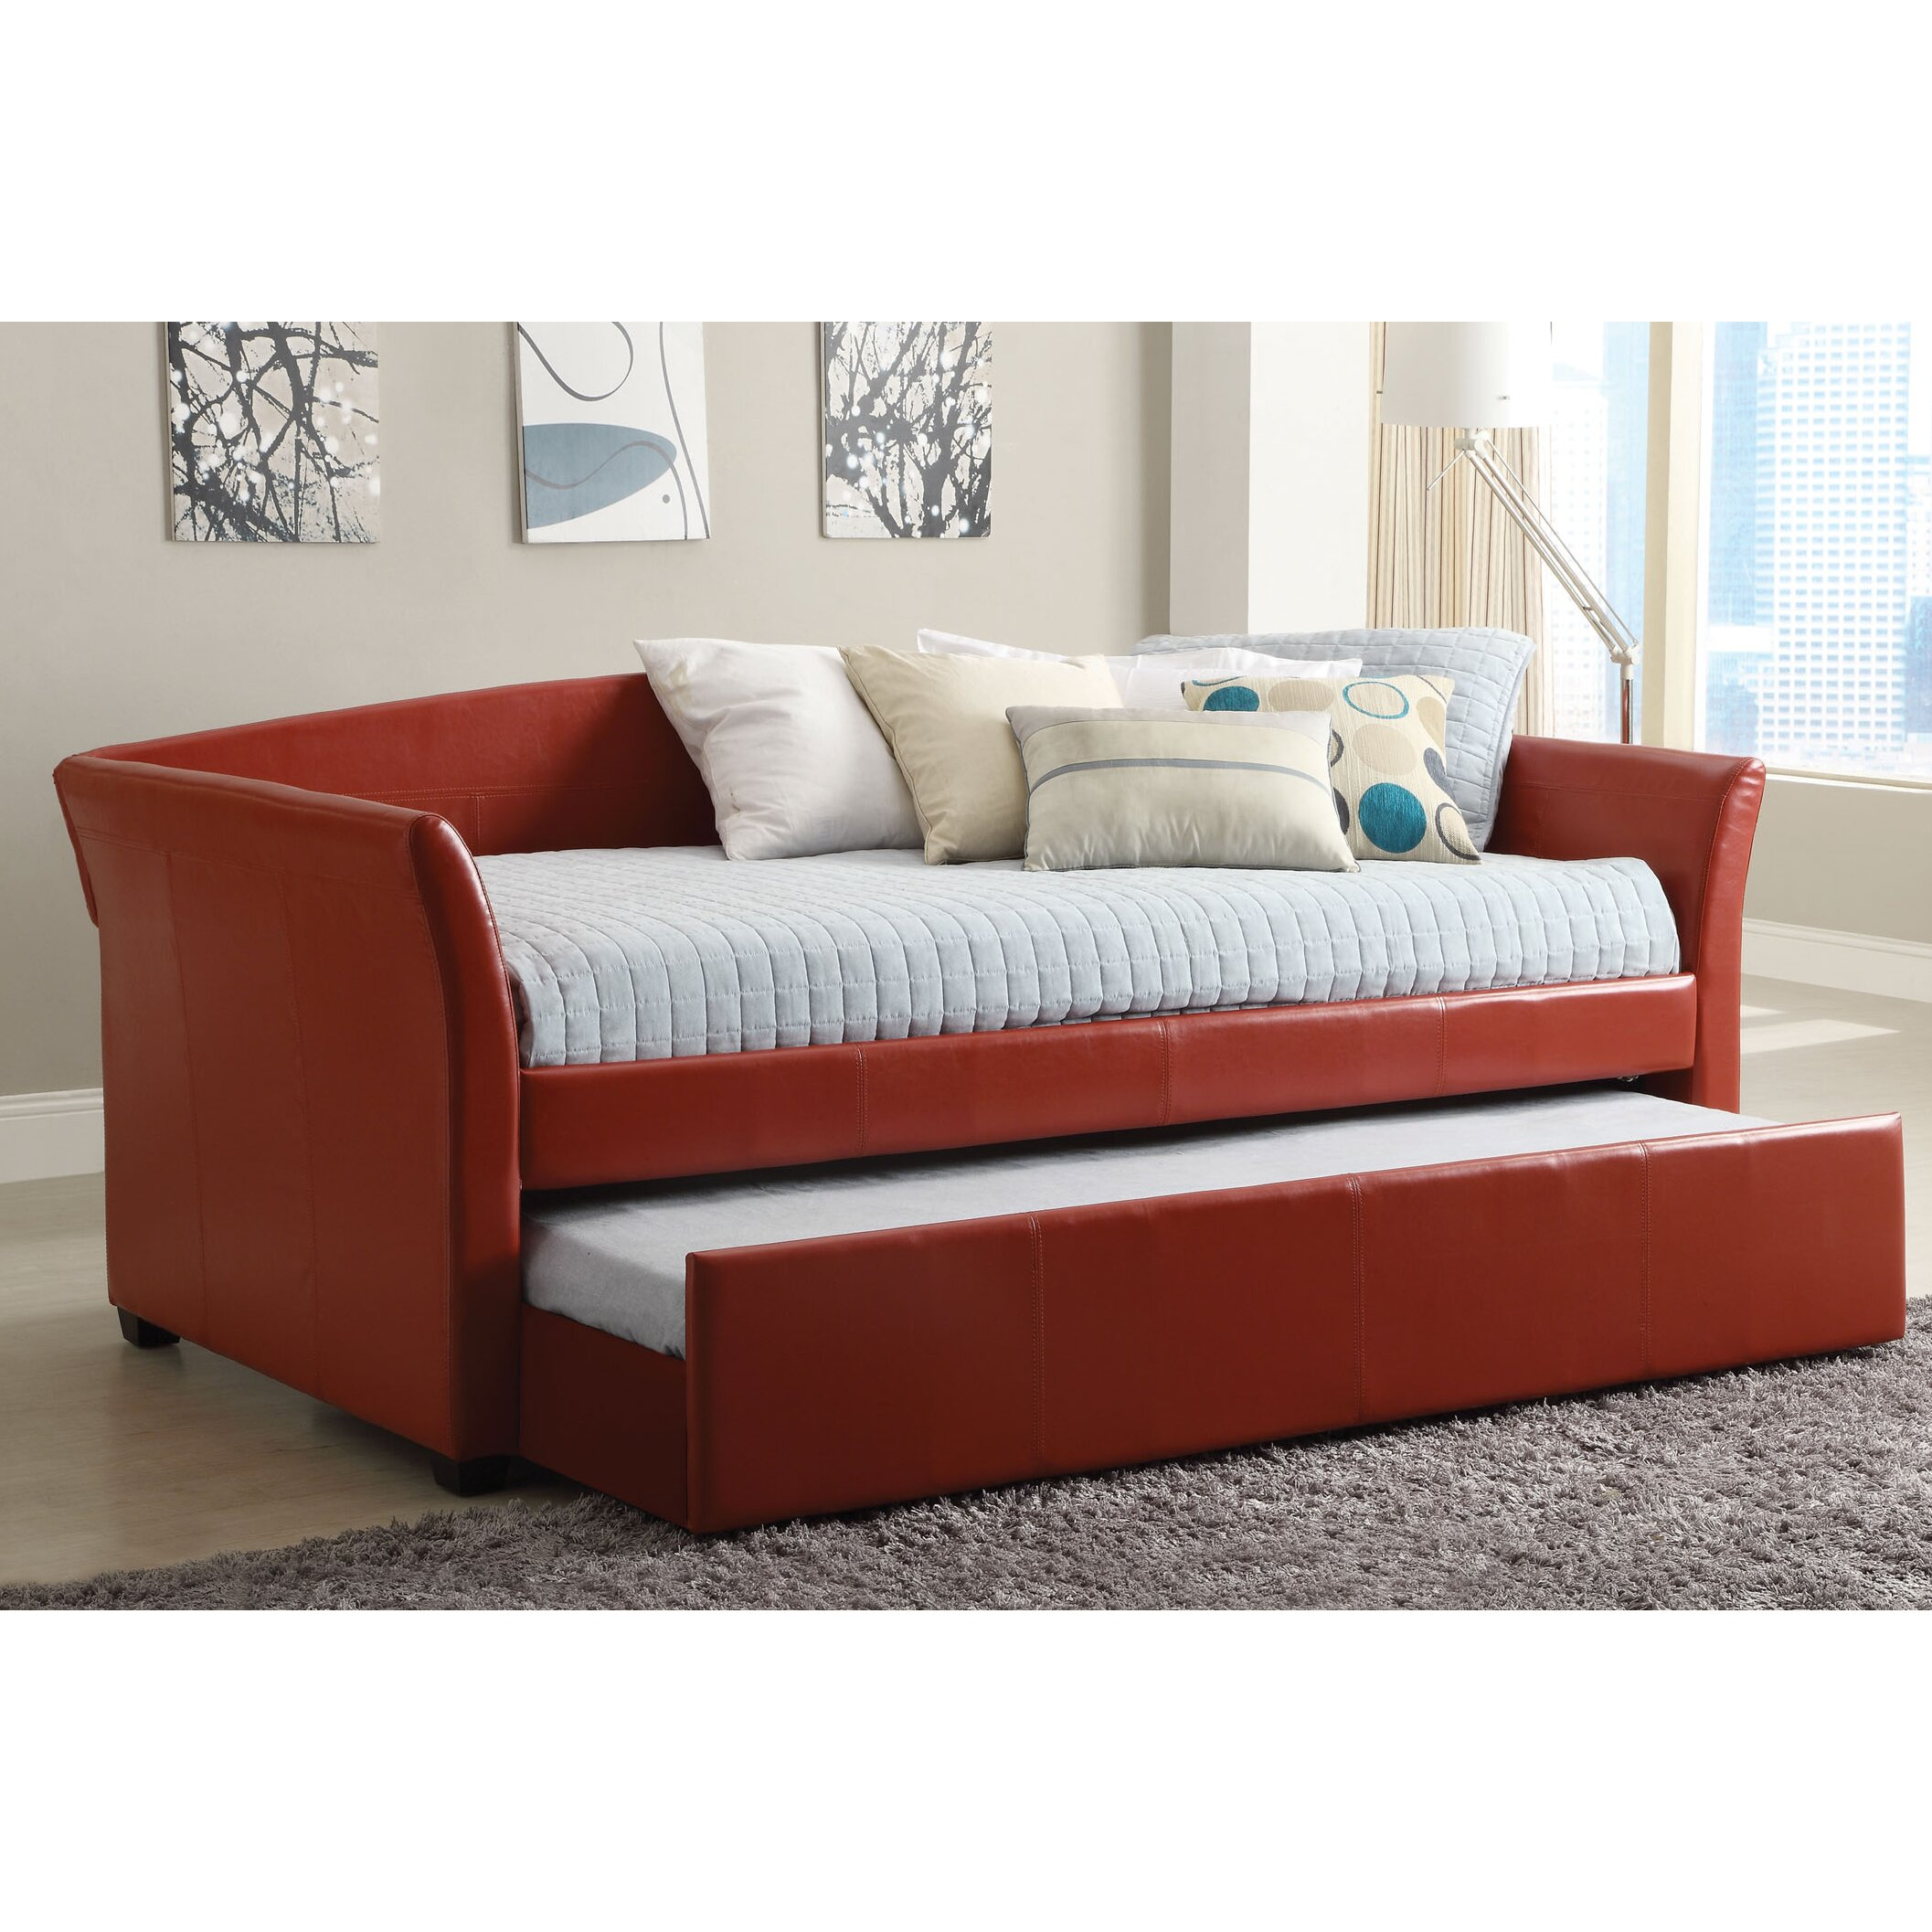 Hokku Designs Roma Daybed With Trundle Reviews Wayfair Supply